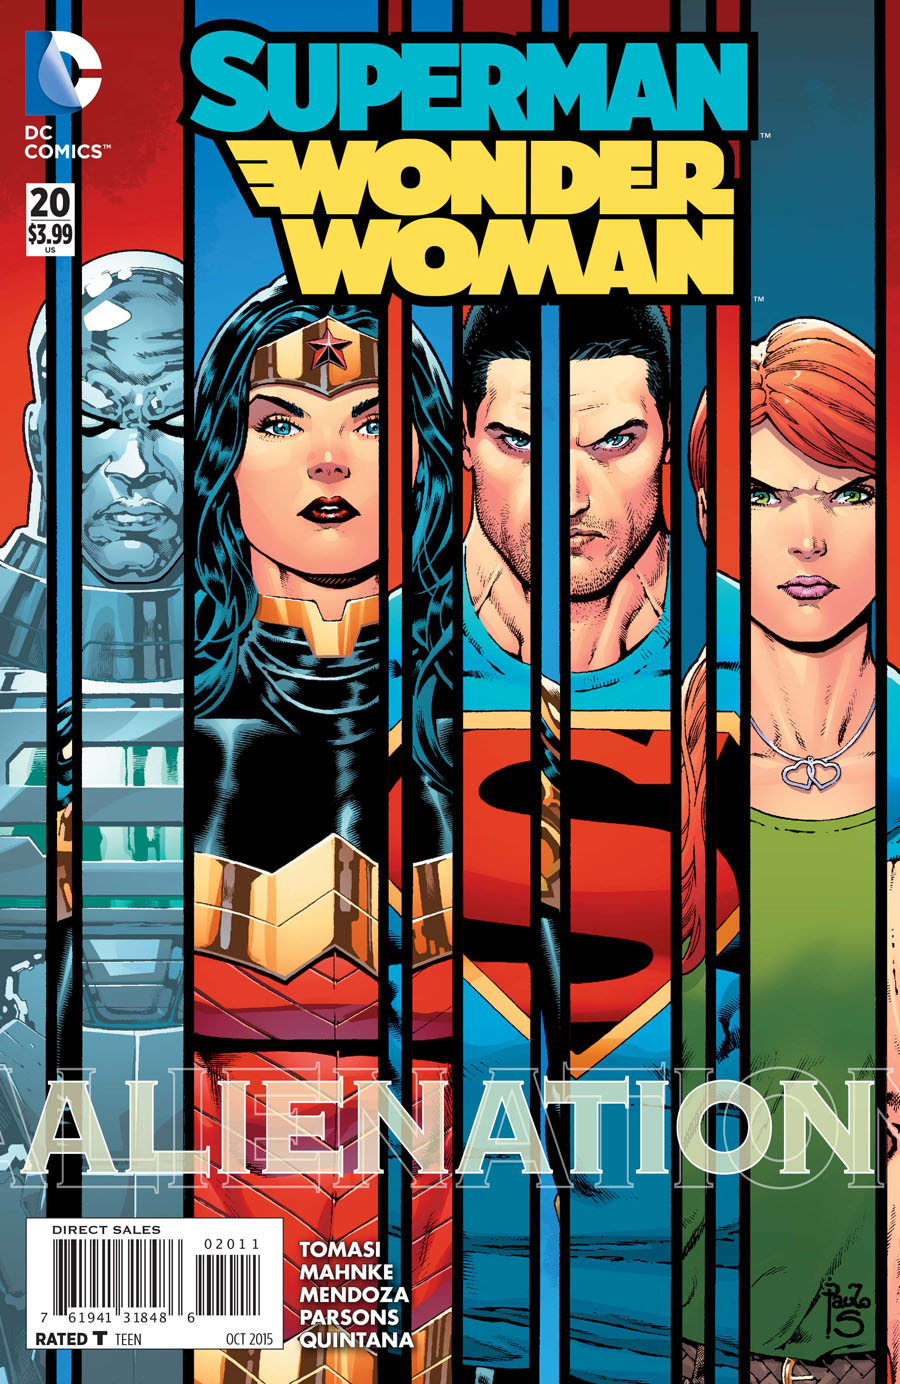 Superman/Wonder Woman #20